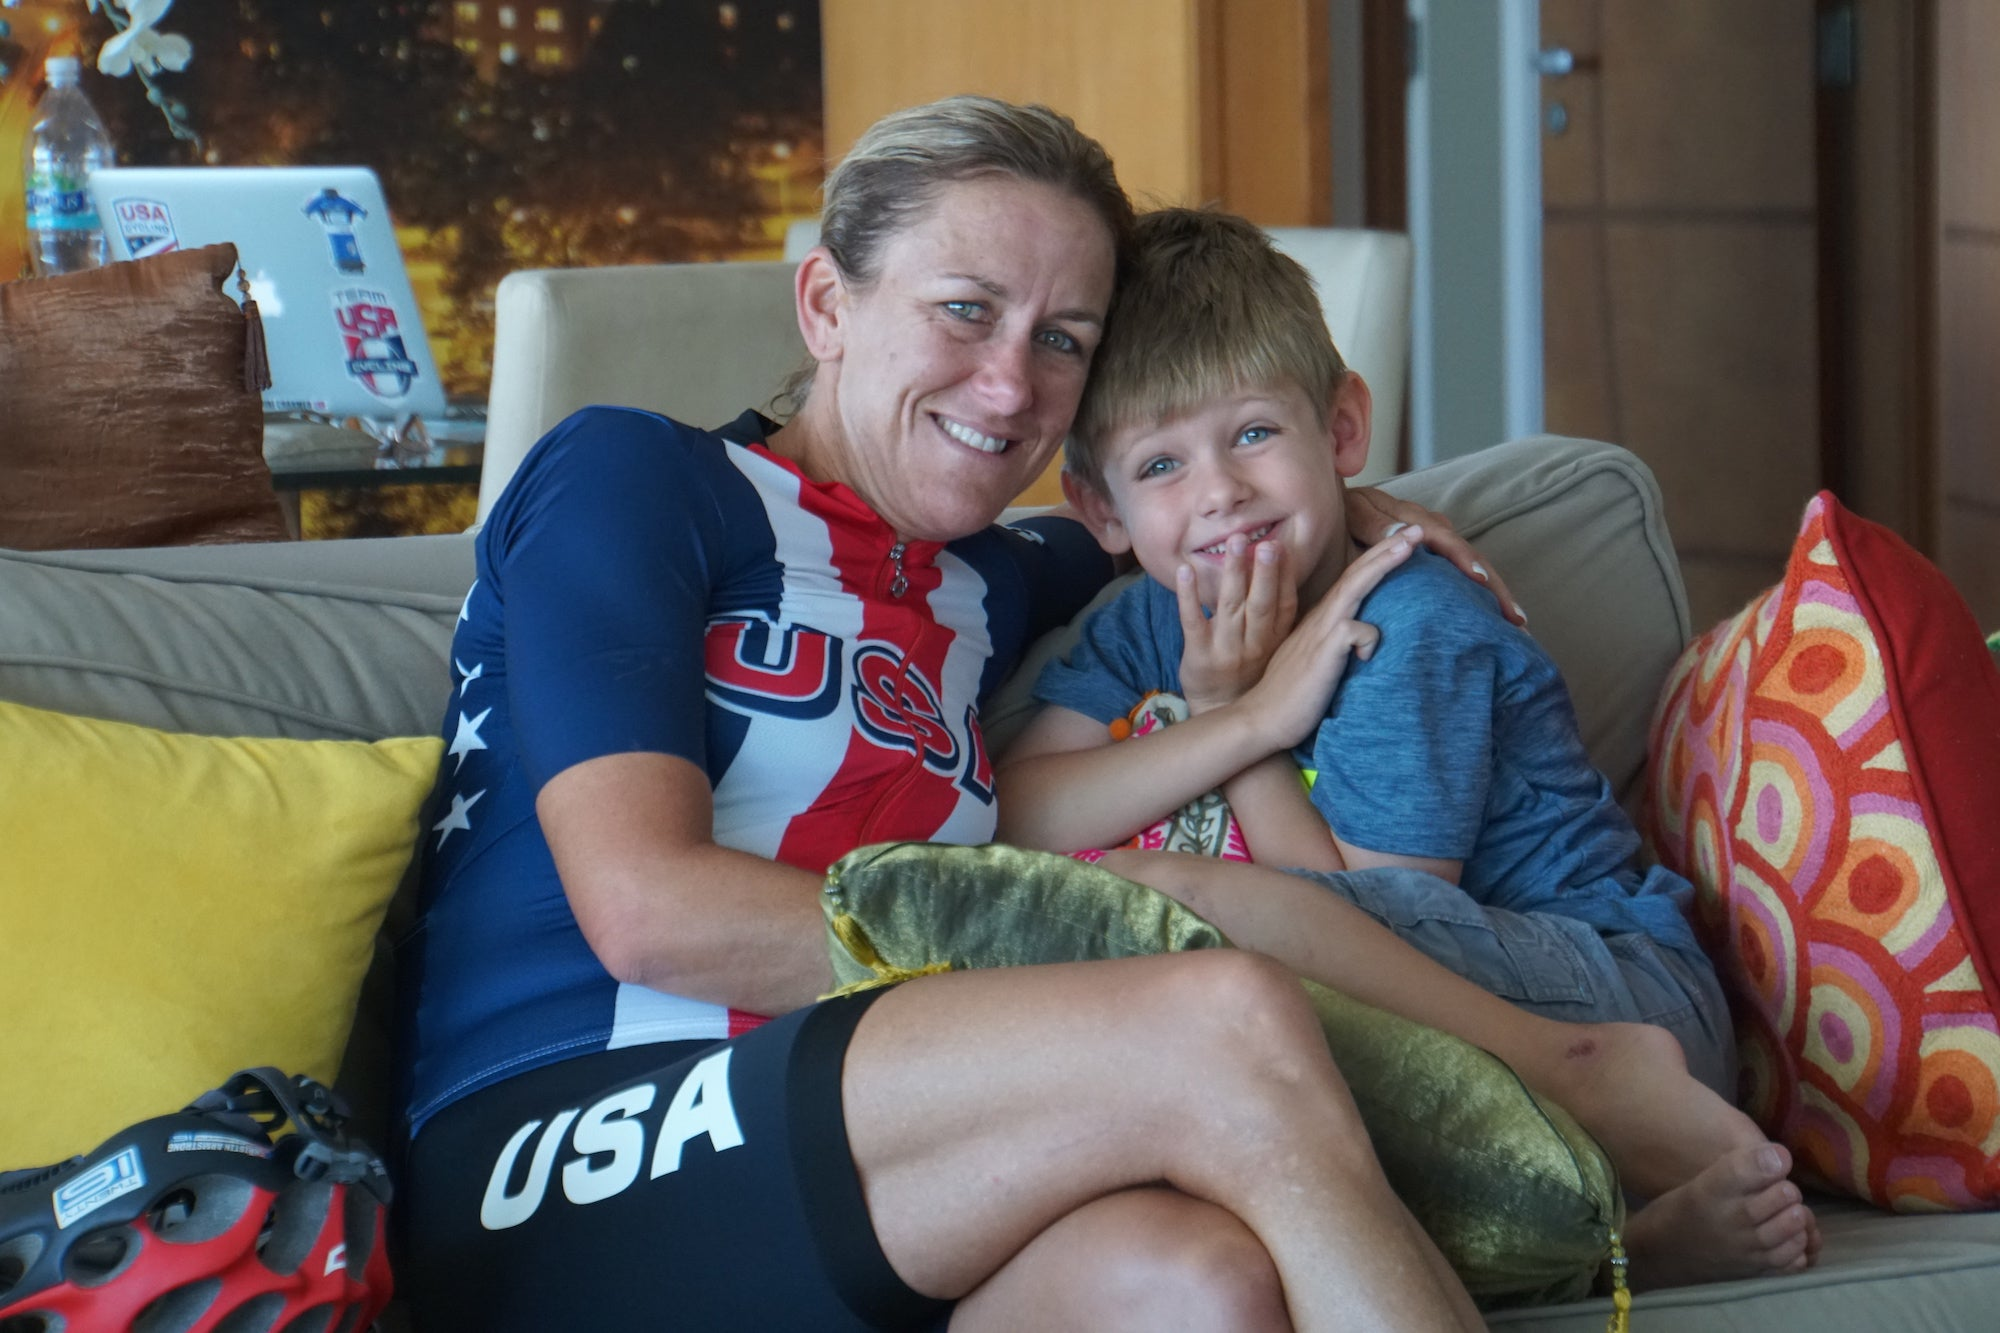 USA woman bike racer with son